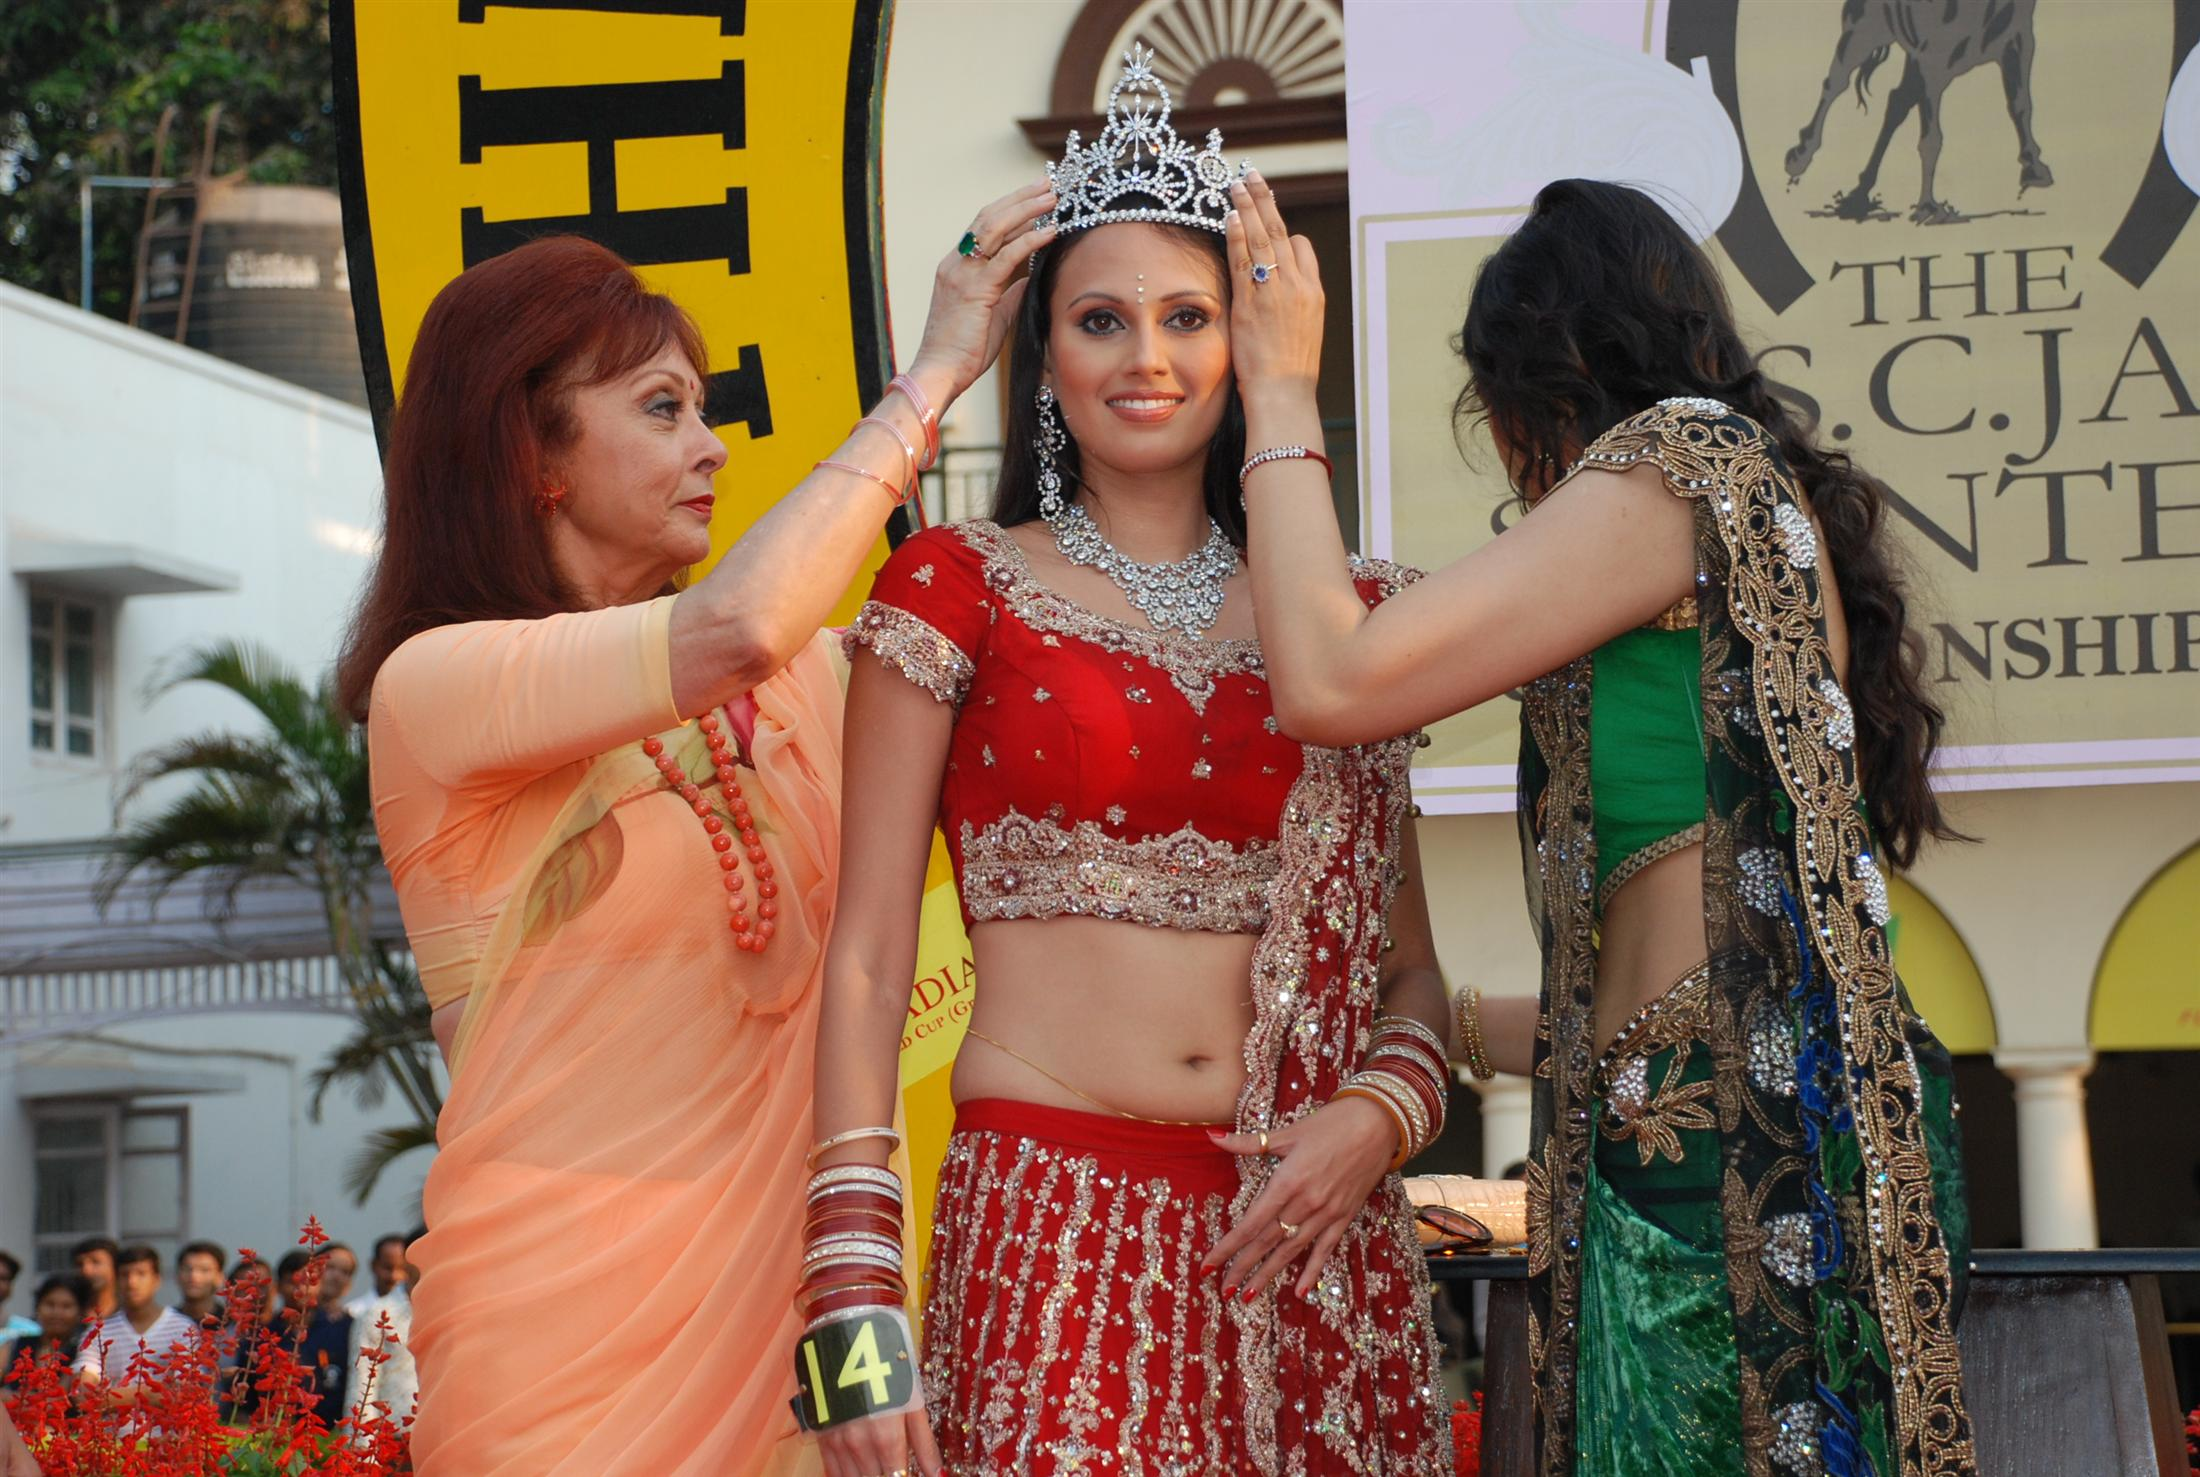 Maureen Wadia crowns the Gladrags Mrs India winner Ms Sophiya Handa